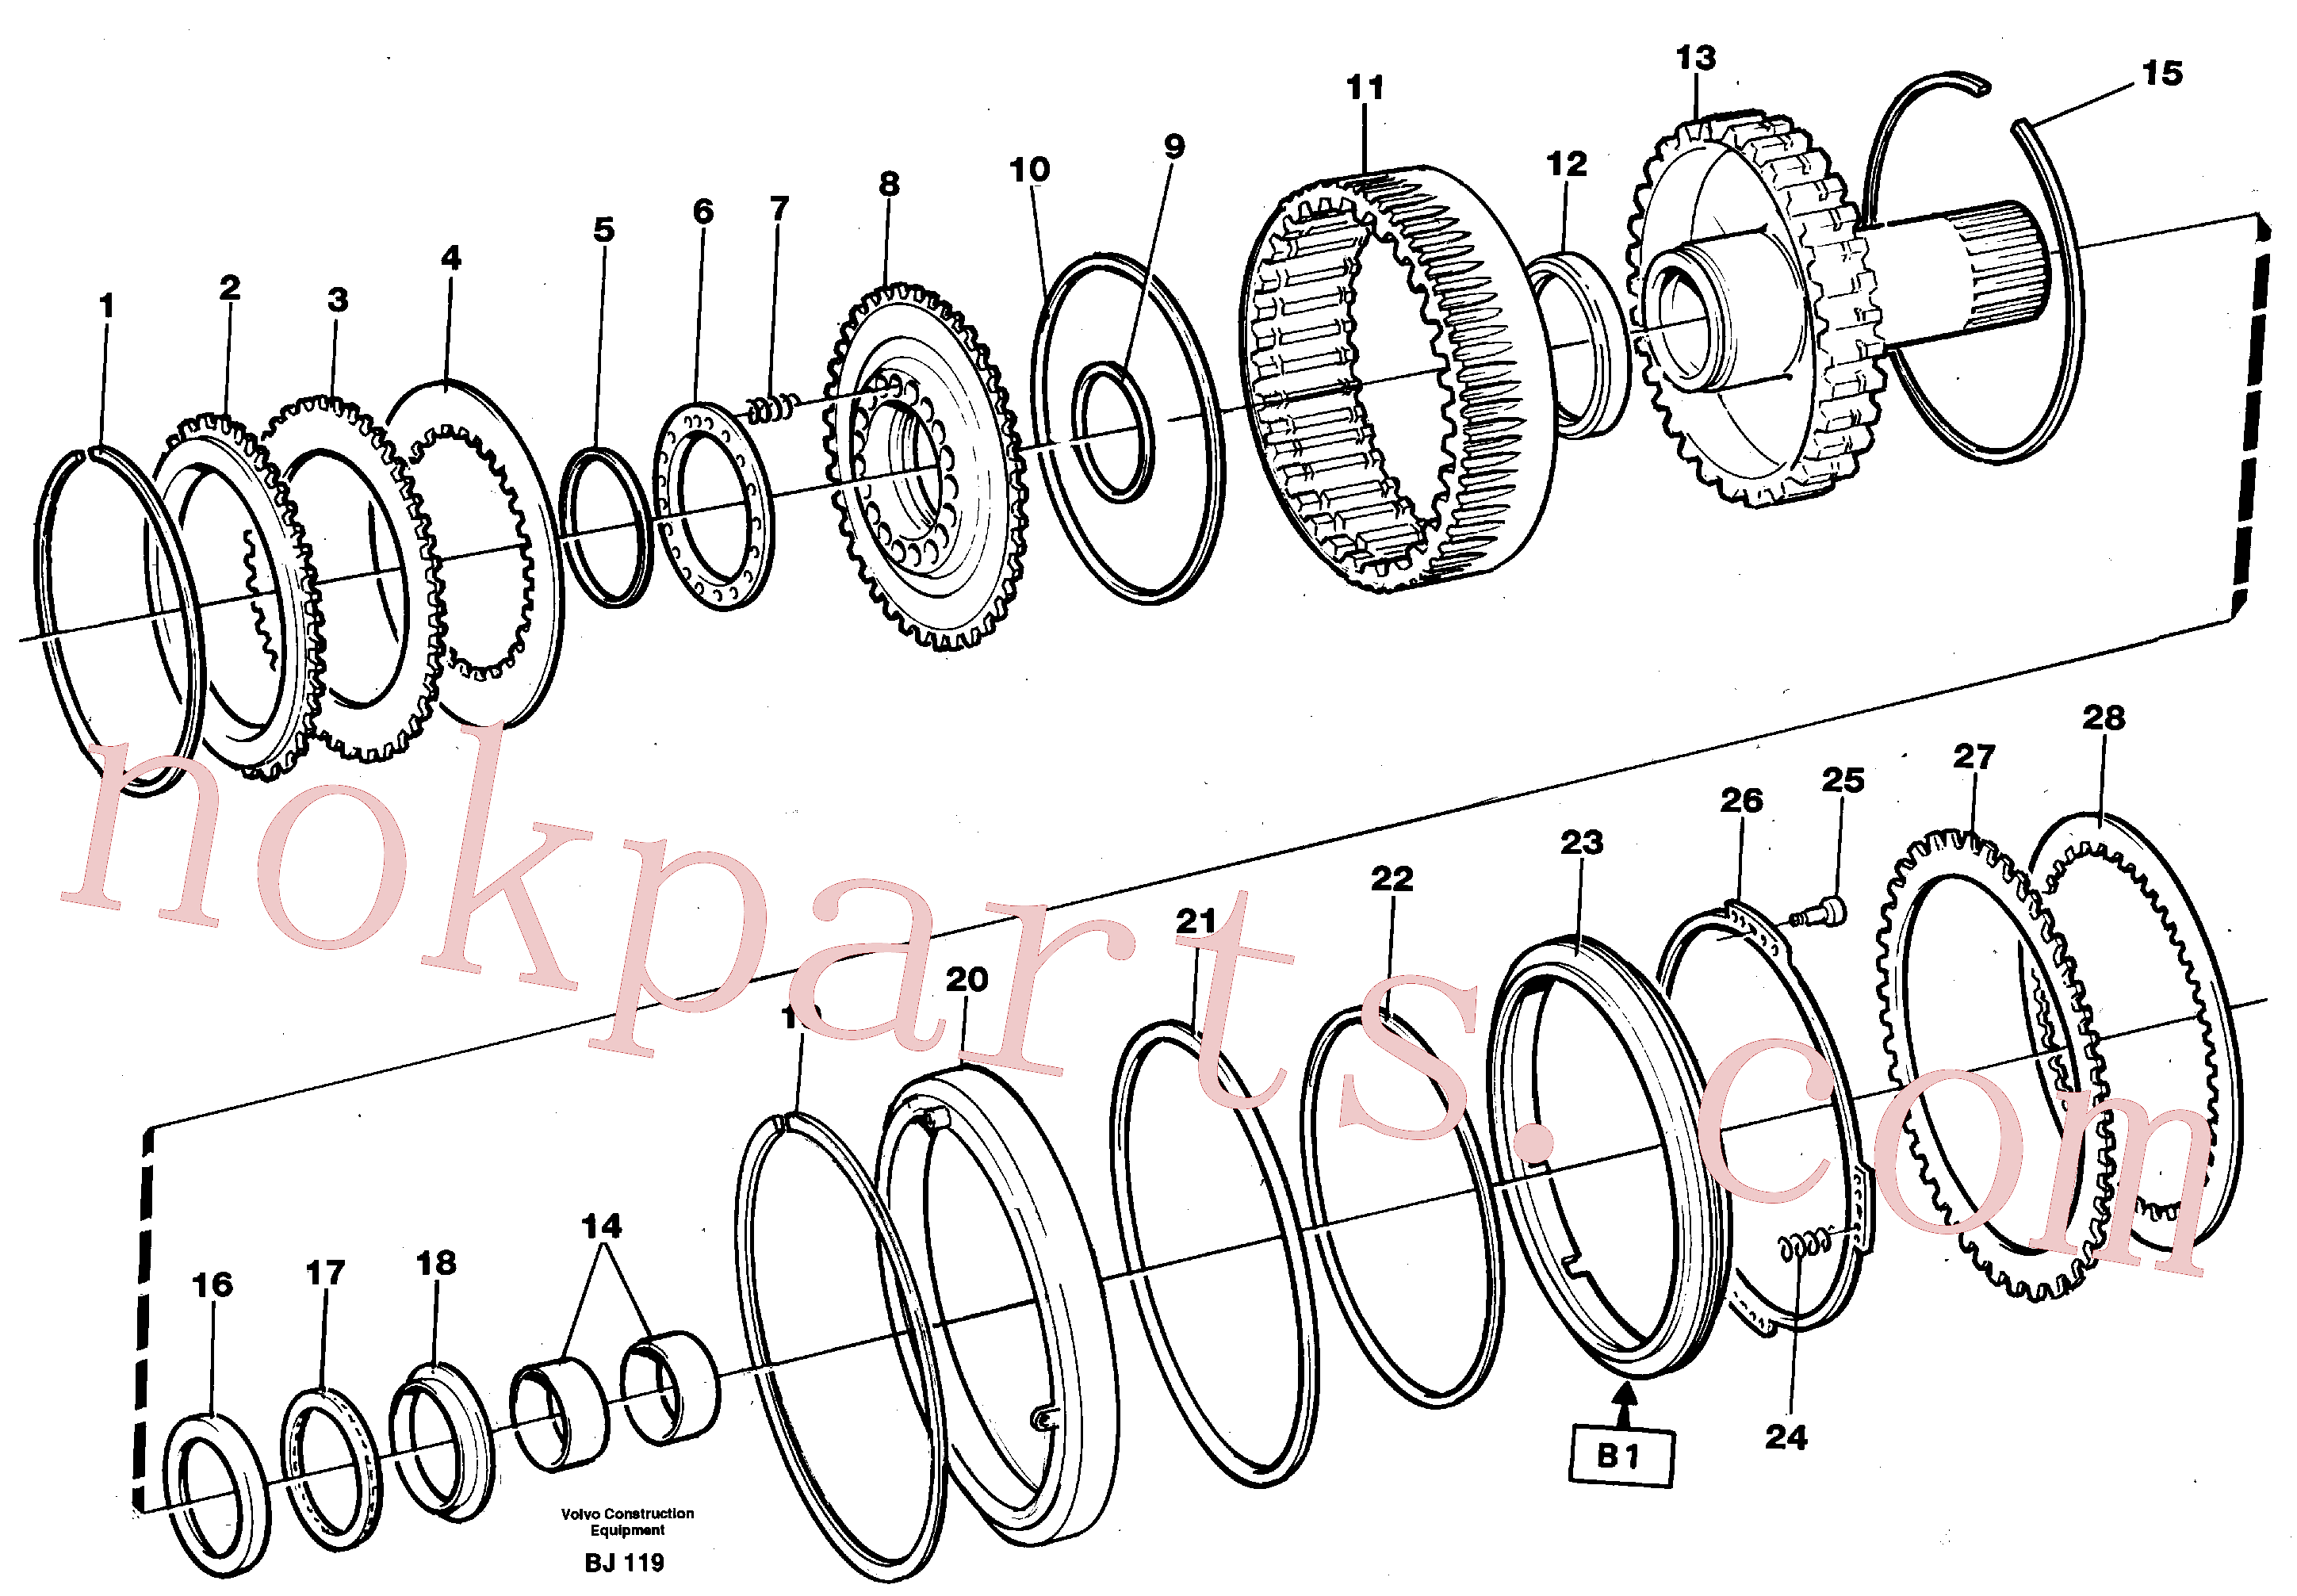 VOE11145596 for Volvo Clutch and brake(BJ119 assembly)